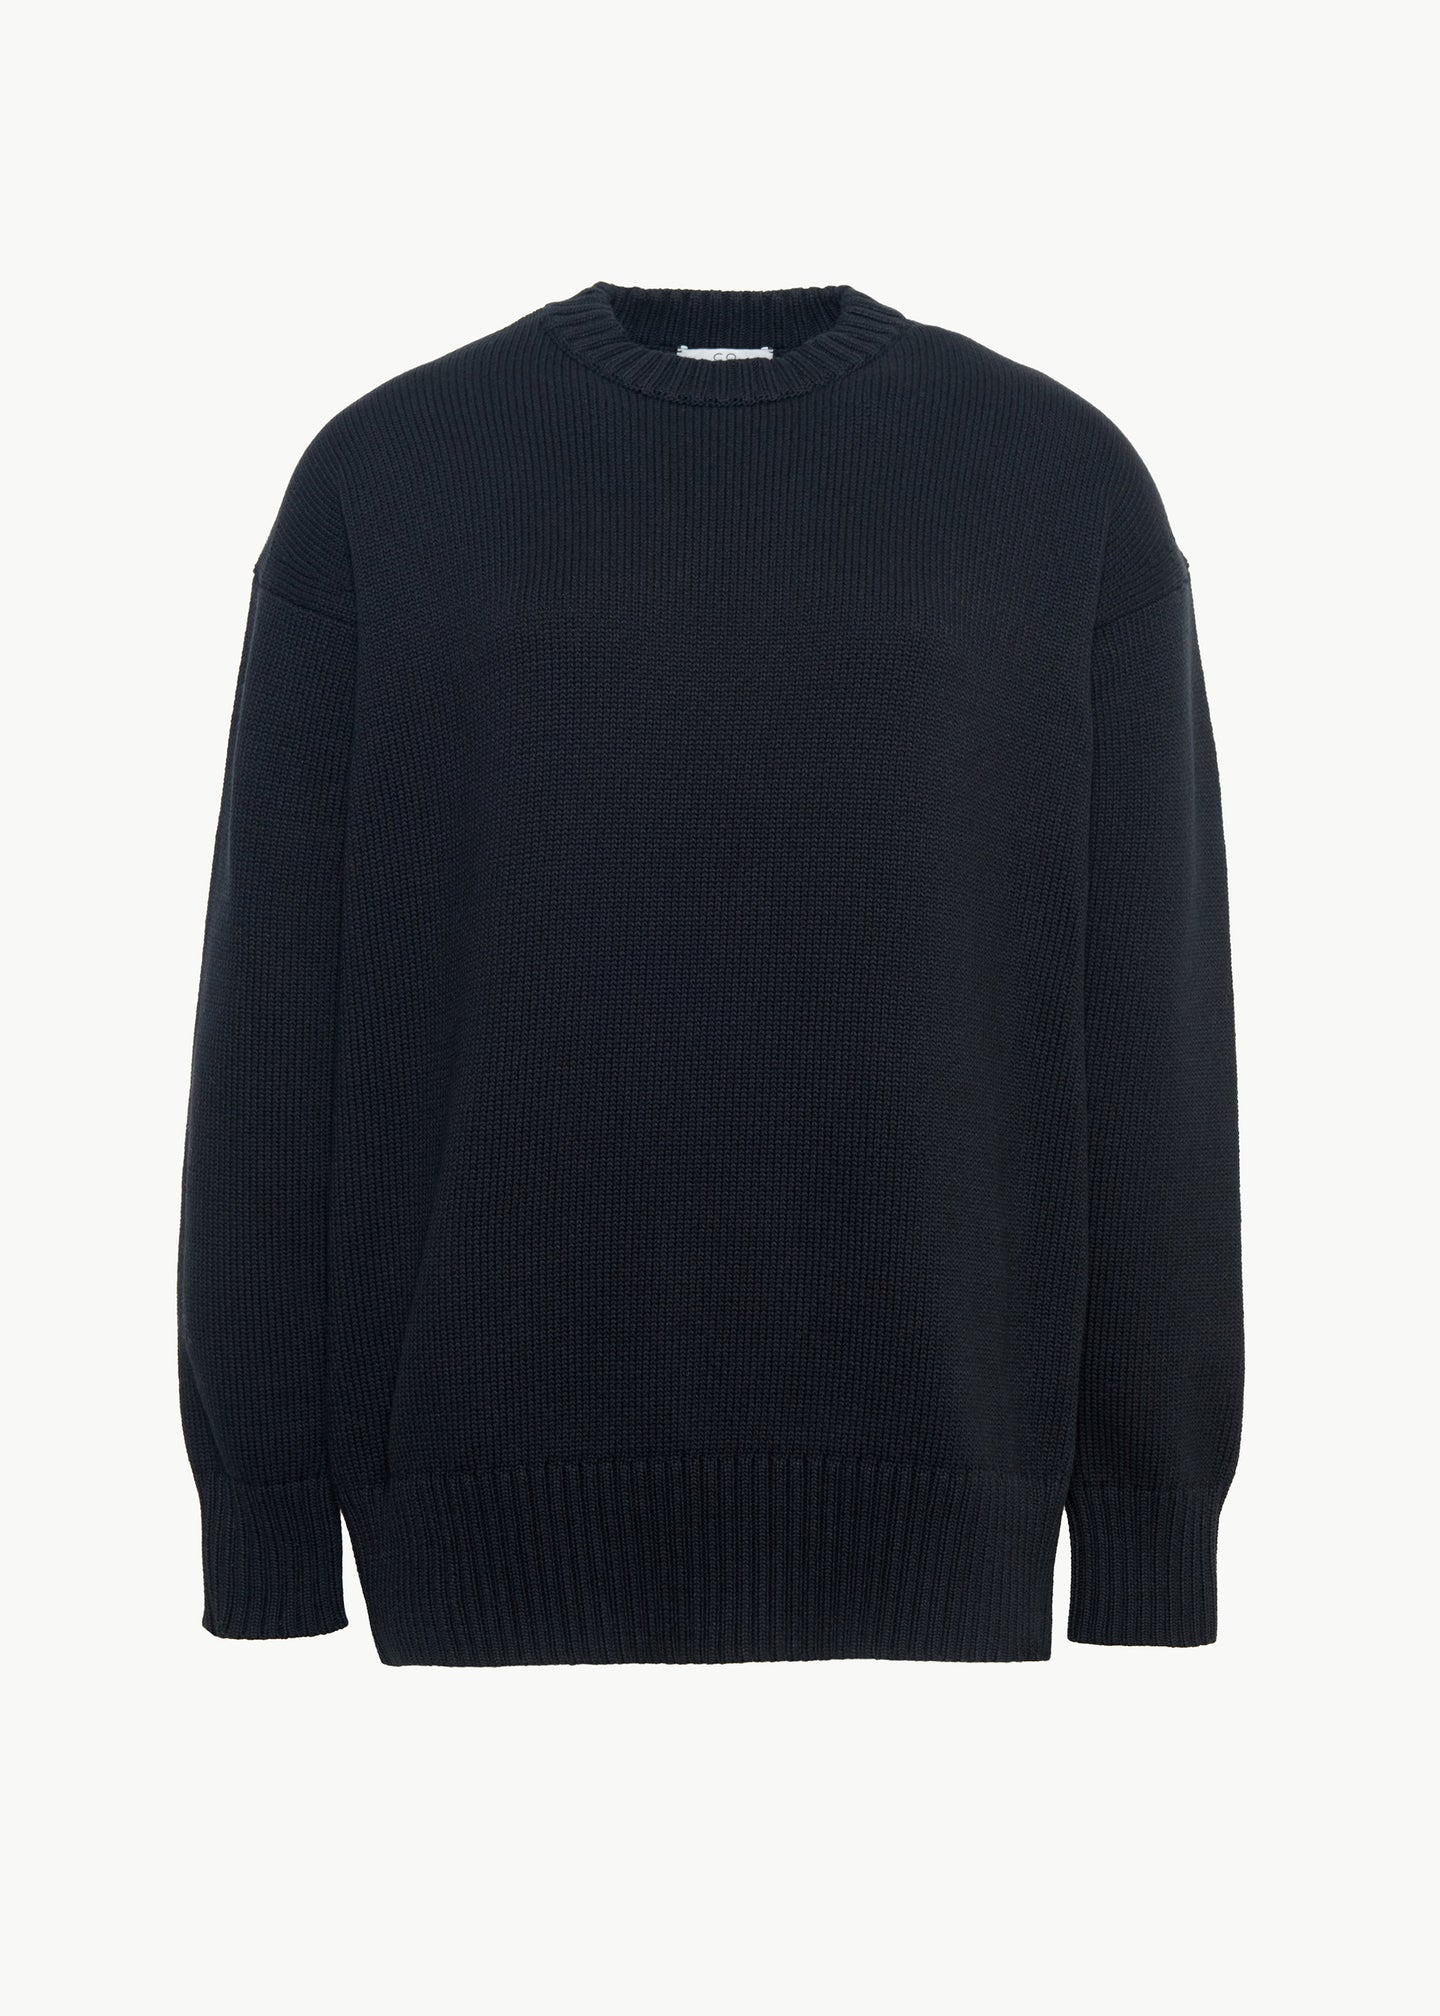 Oversized Crewneck Sweater in Cotton - Black - CO